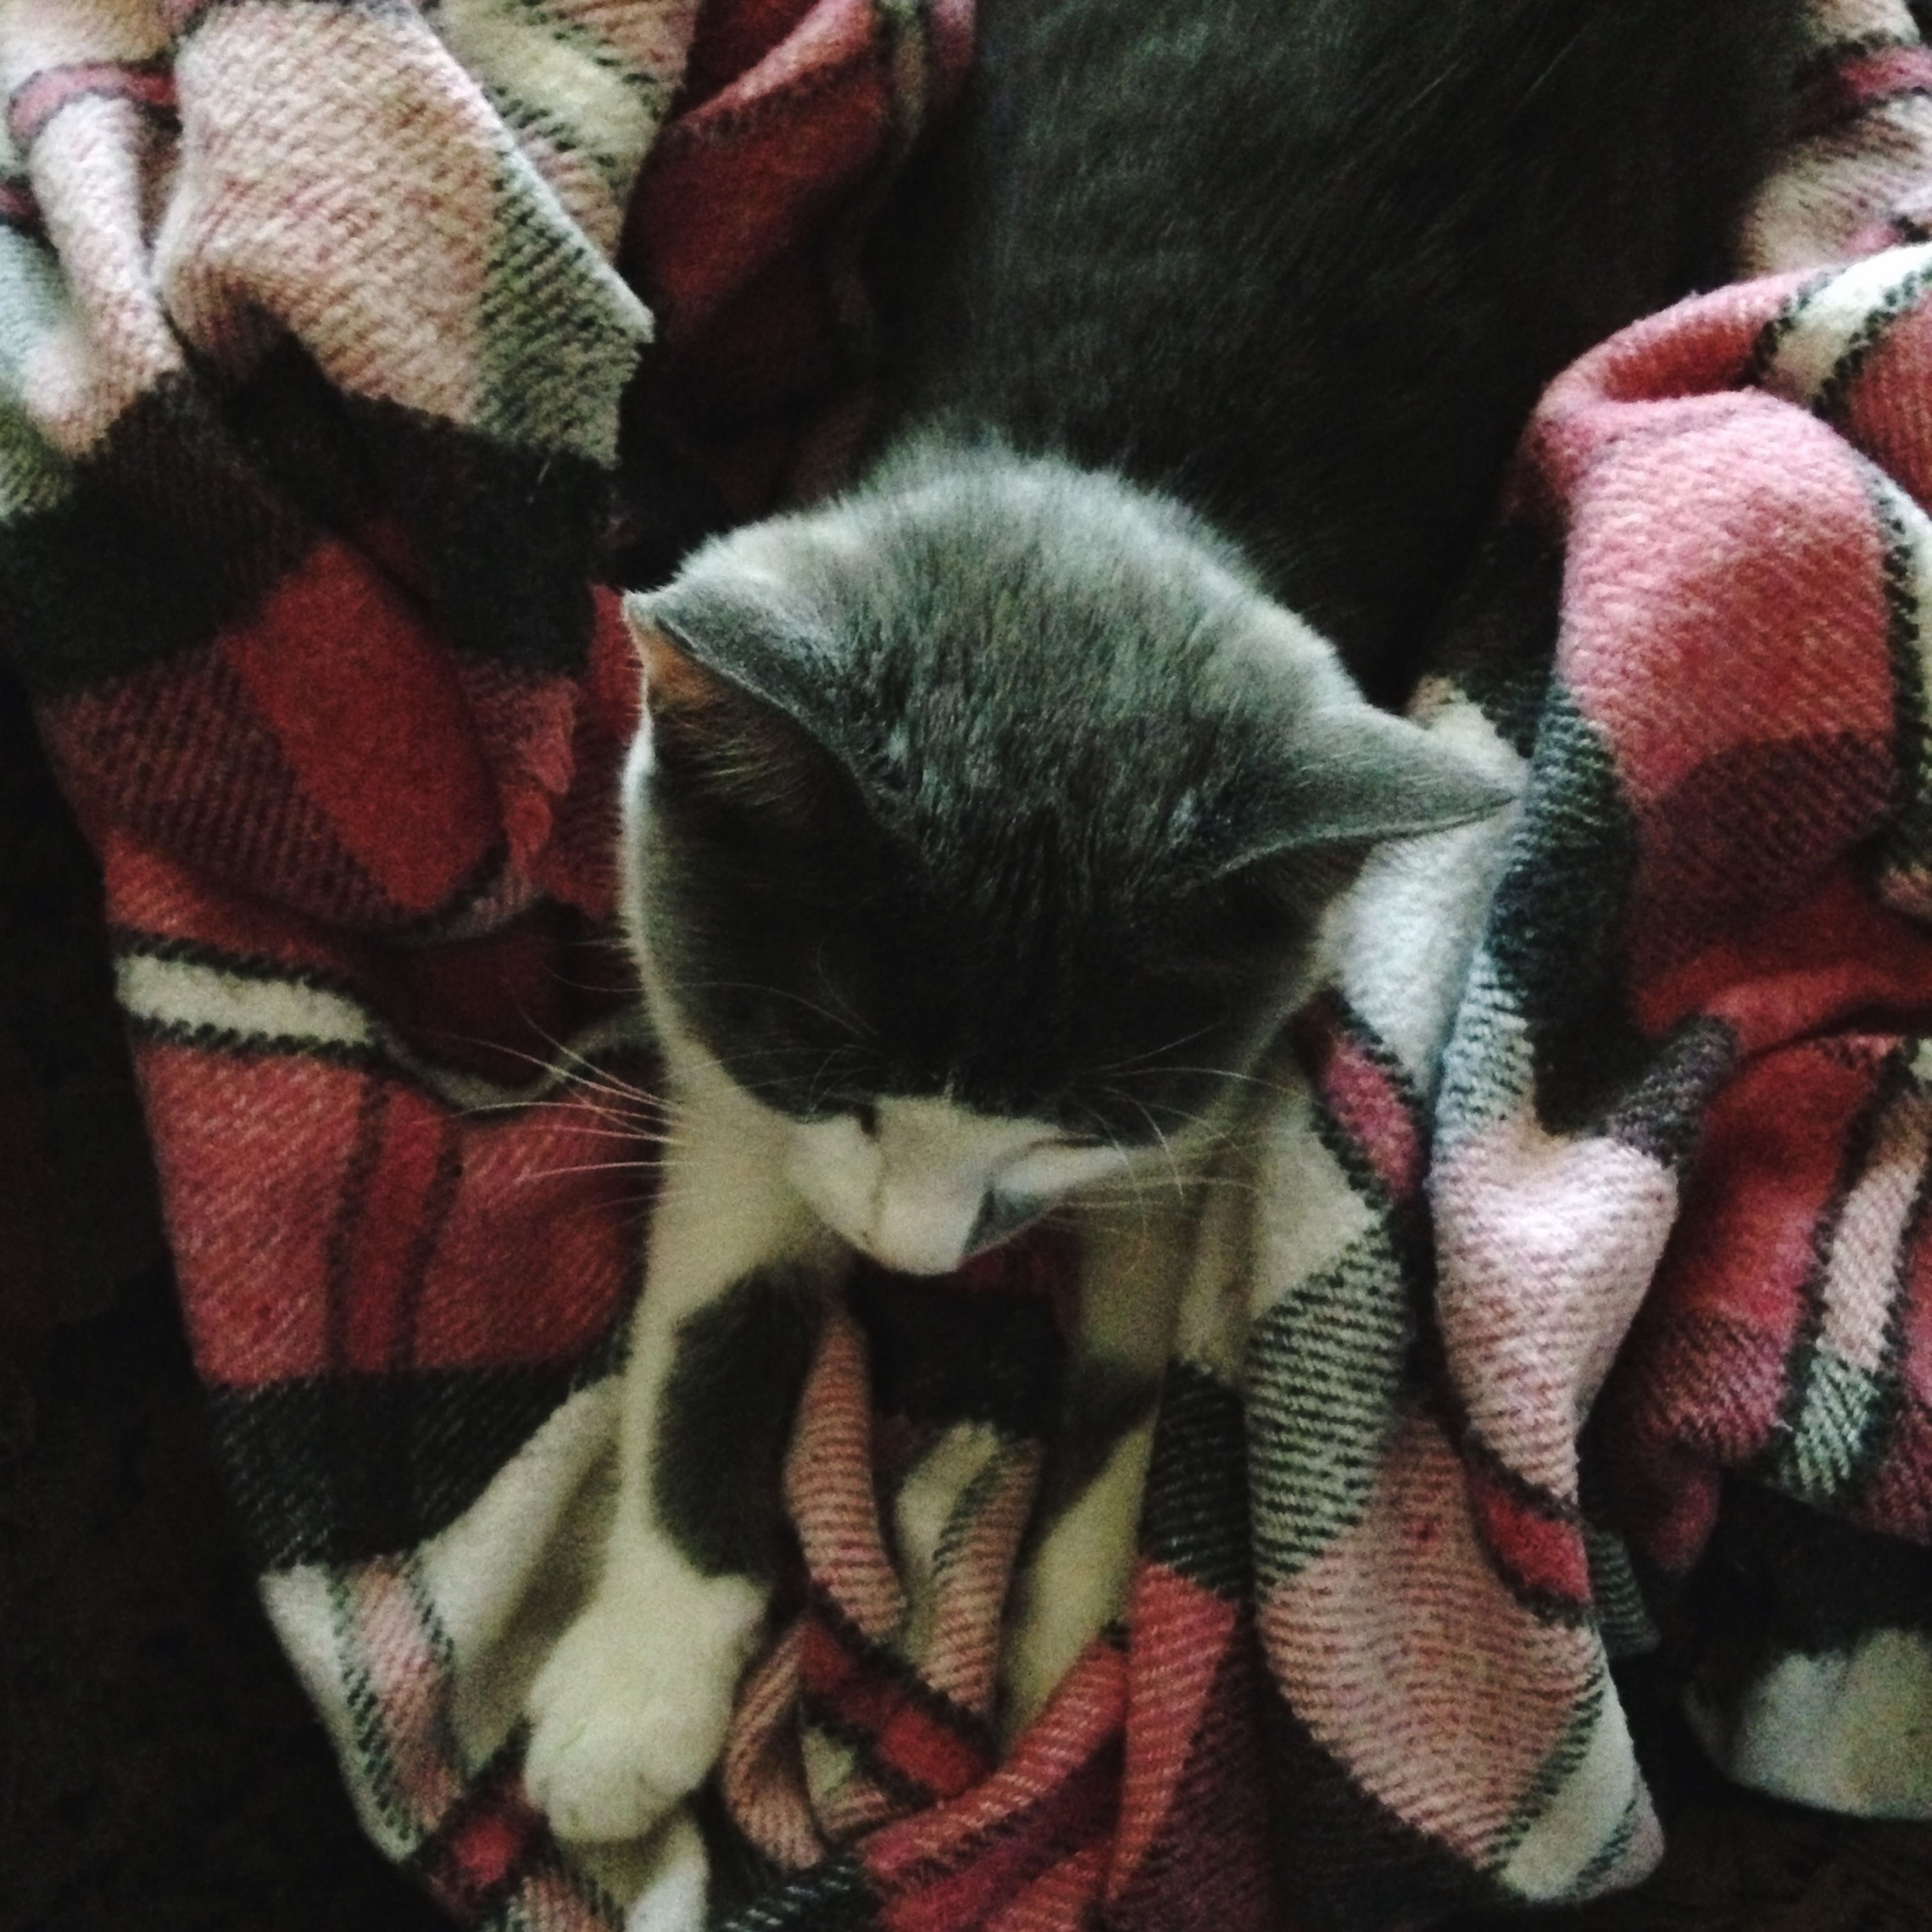 pets, bed, relaxation, sleeping, mammal, blanket, resting, lifestyles, lying down, comfortable, sofa, close-up, casual clothing, part of